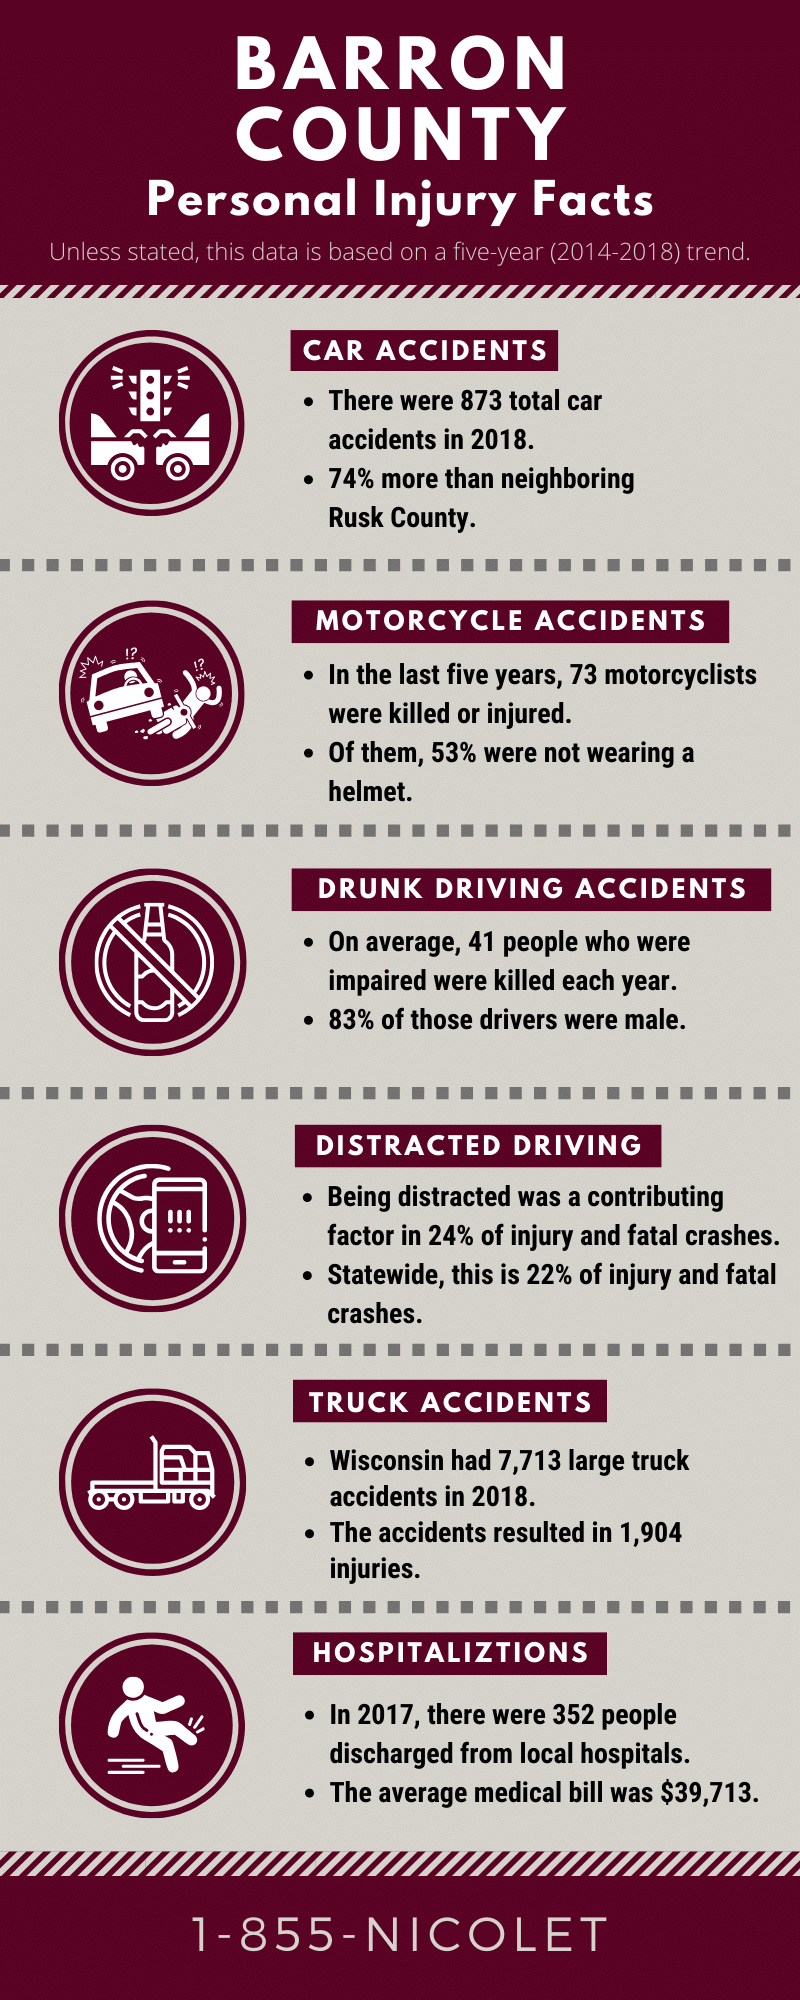 Barron county personal injury facts